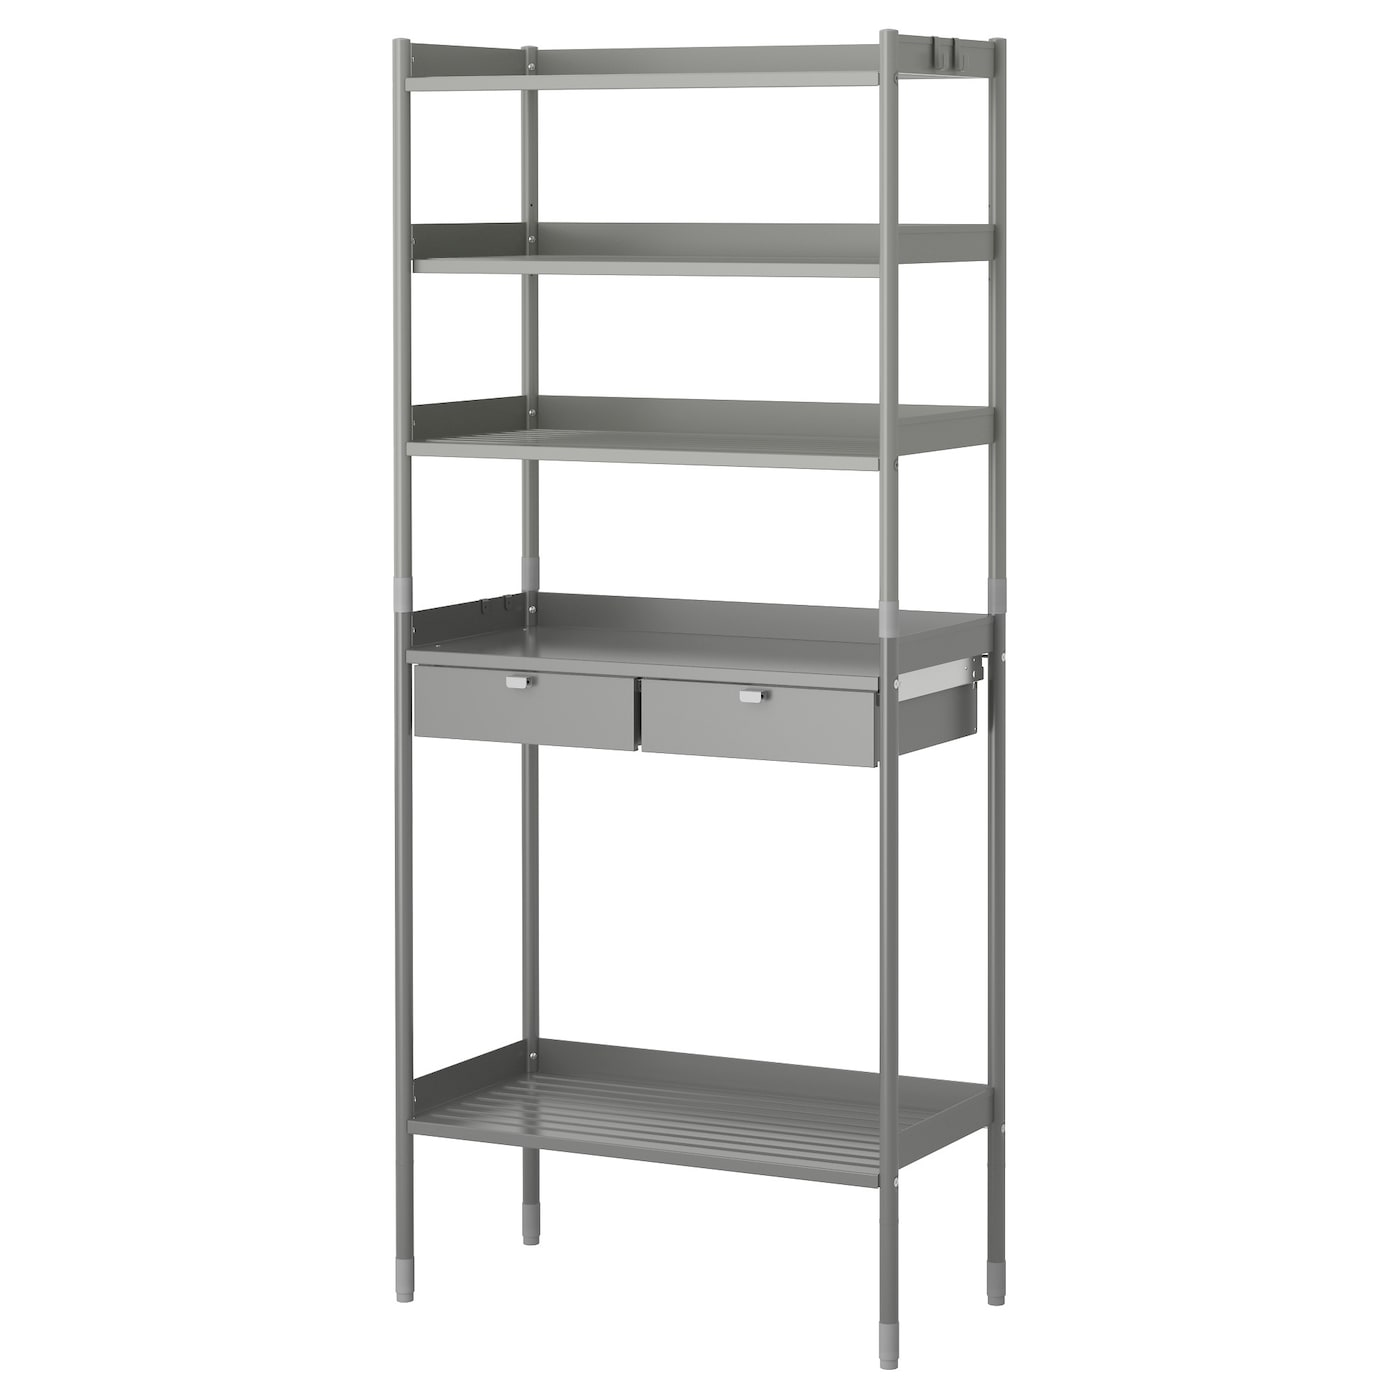 IKEA HINDÖ shelving unit in/outdoor The drawers have pull-out stops to keep them in place.